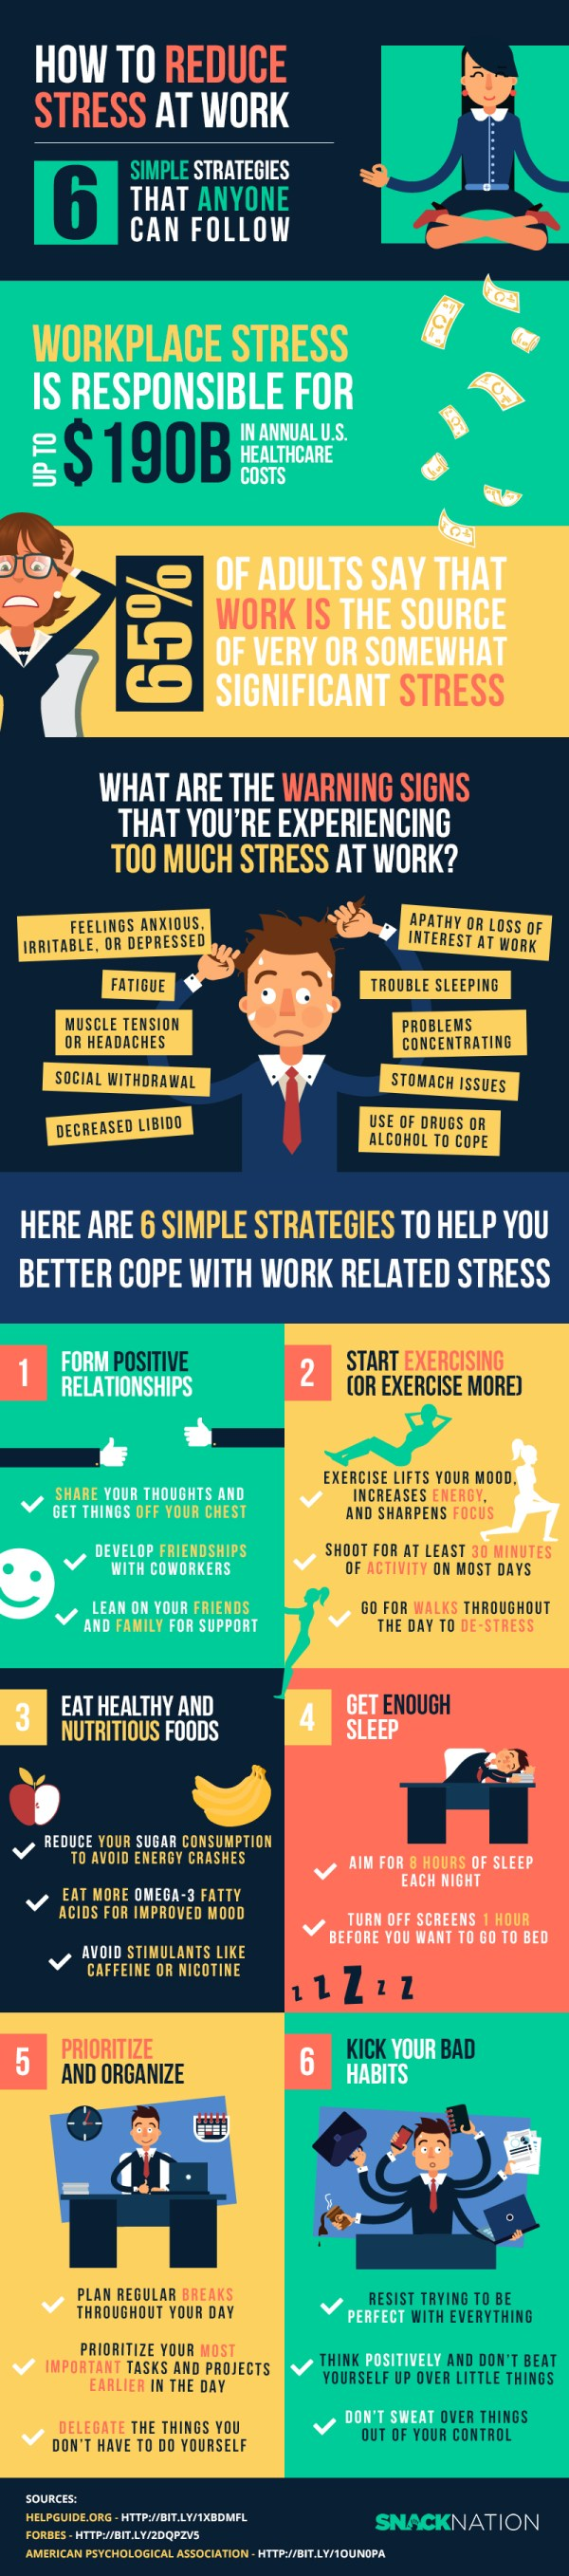 How to Reduce Stress at Work: 6 Simple Strategies Anyone Can Follow - how to reduce stress at work infographic